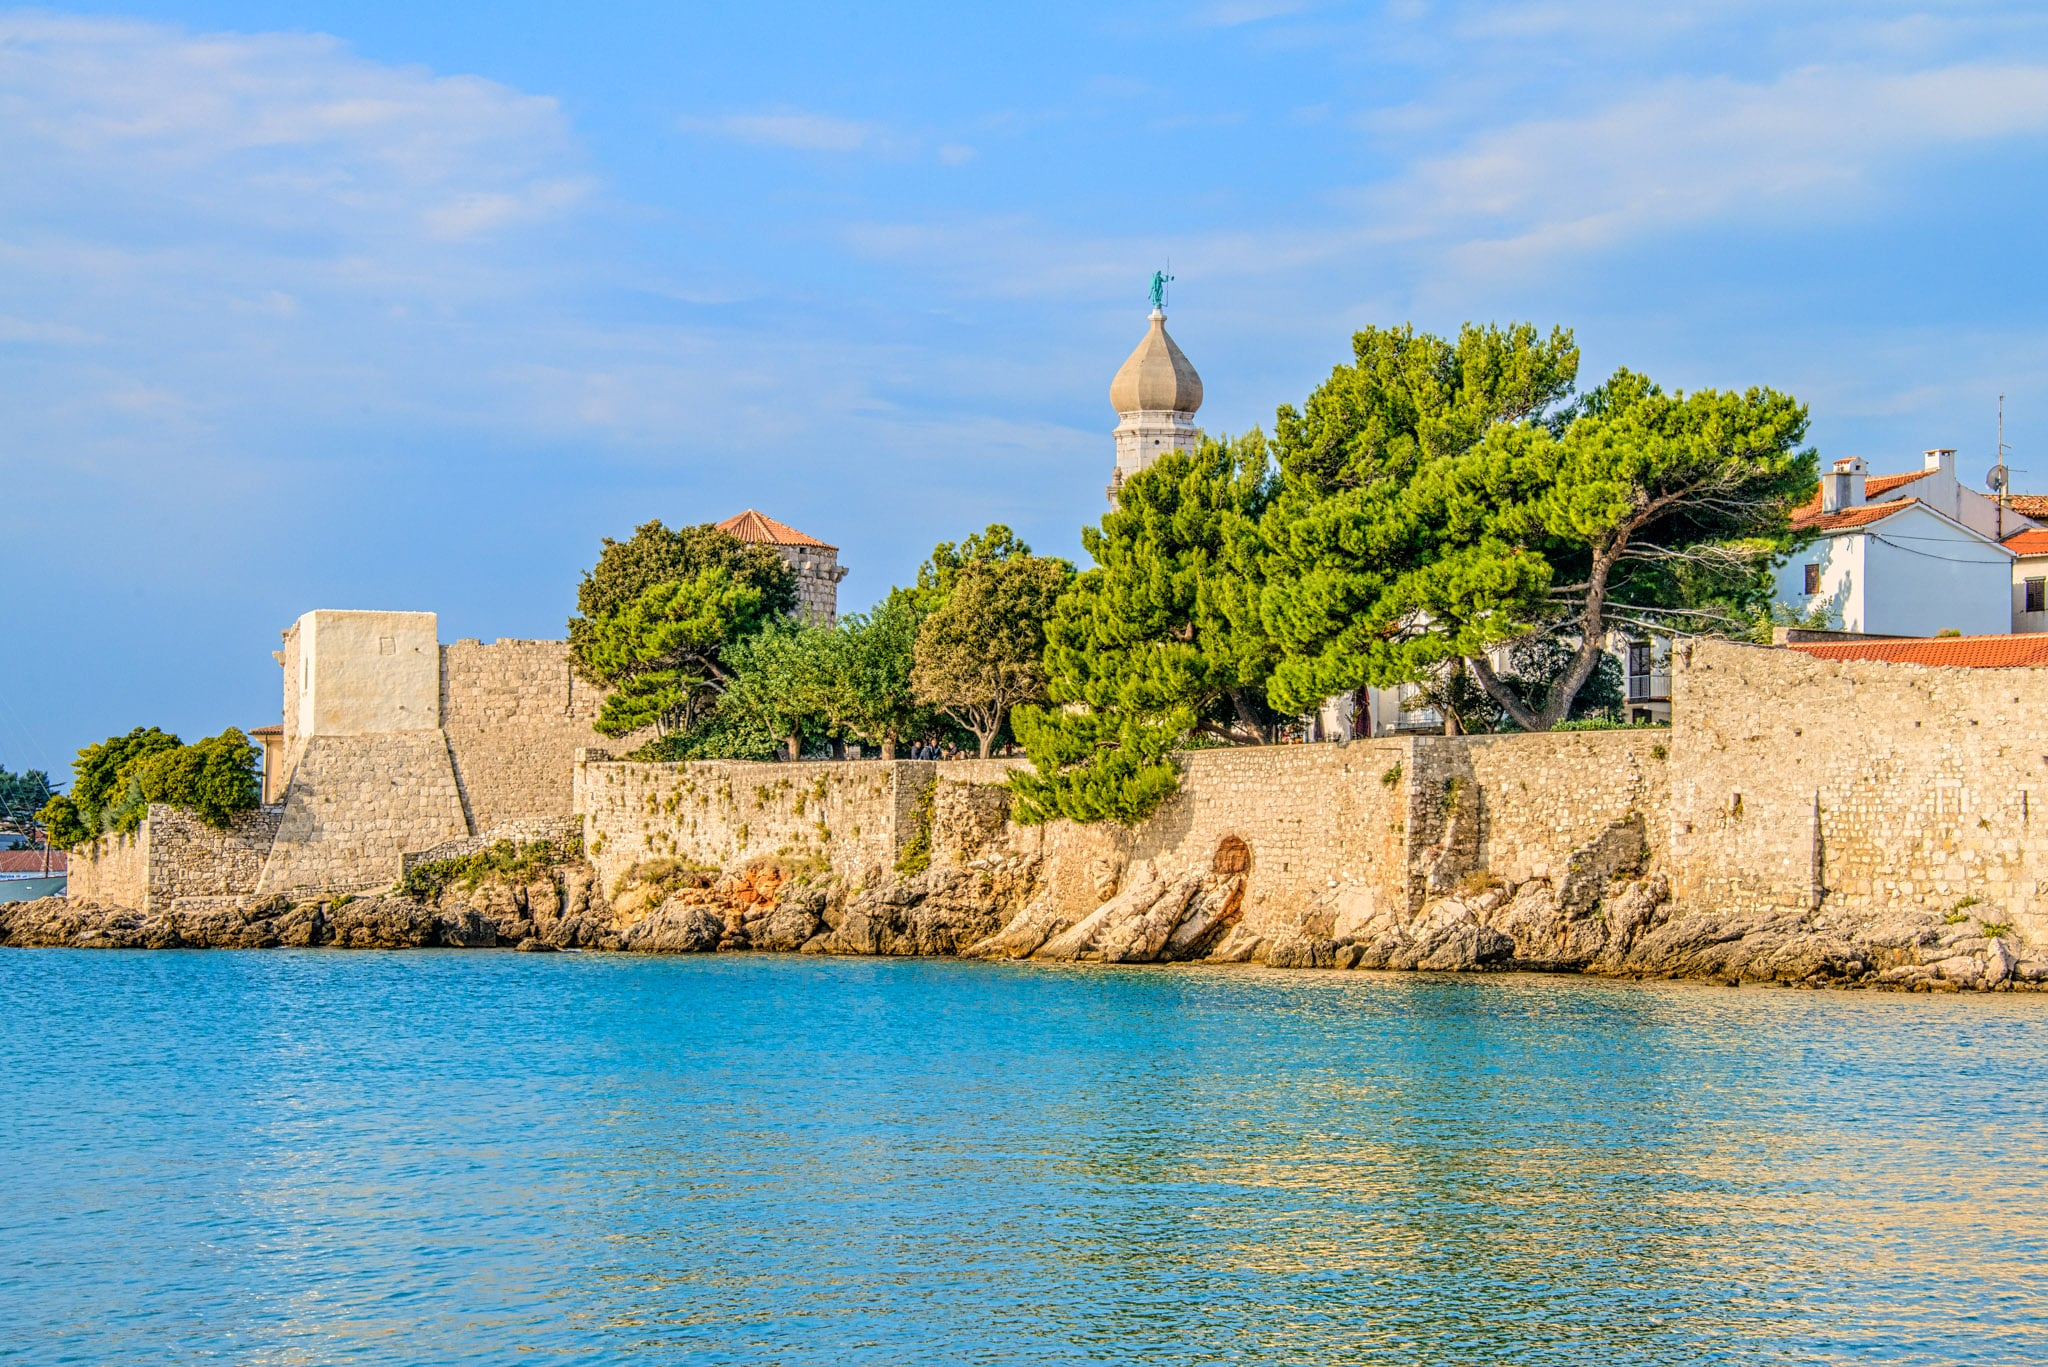 A view of the city walls and Krk Cathedral in Krk, Croatia.